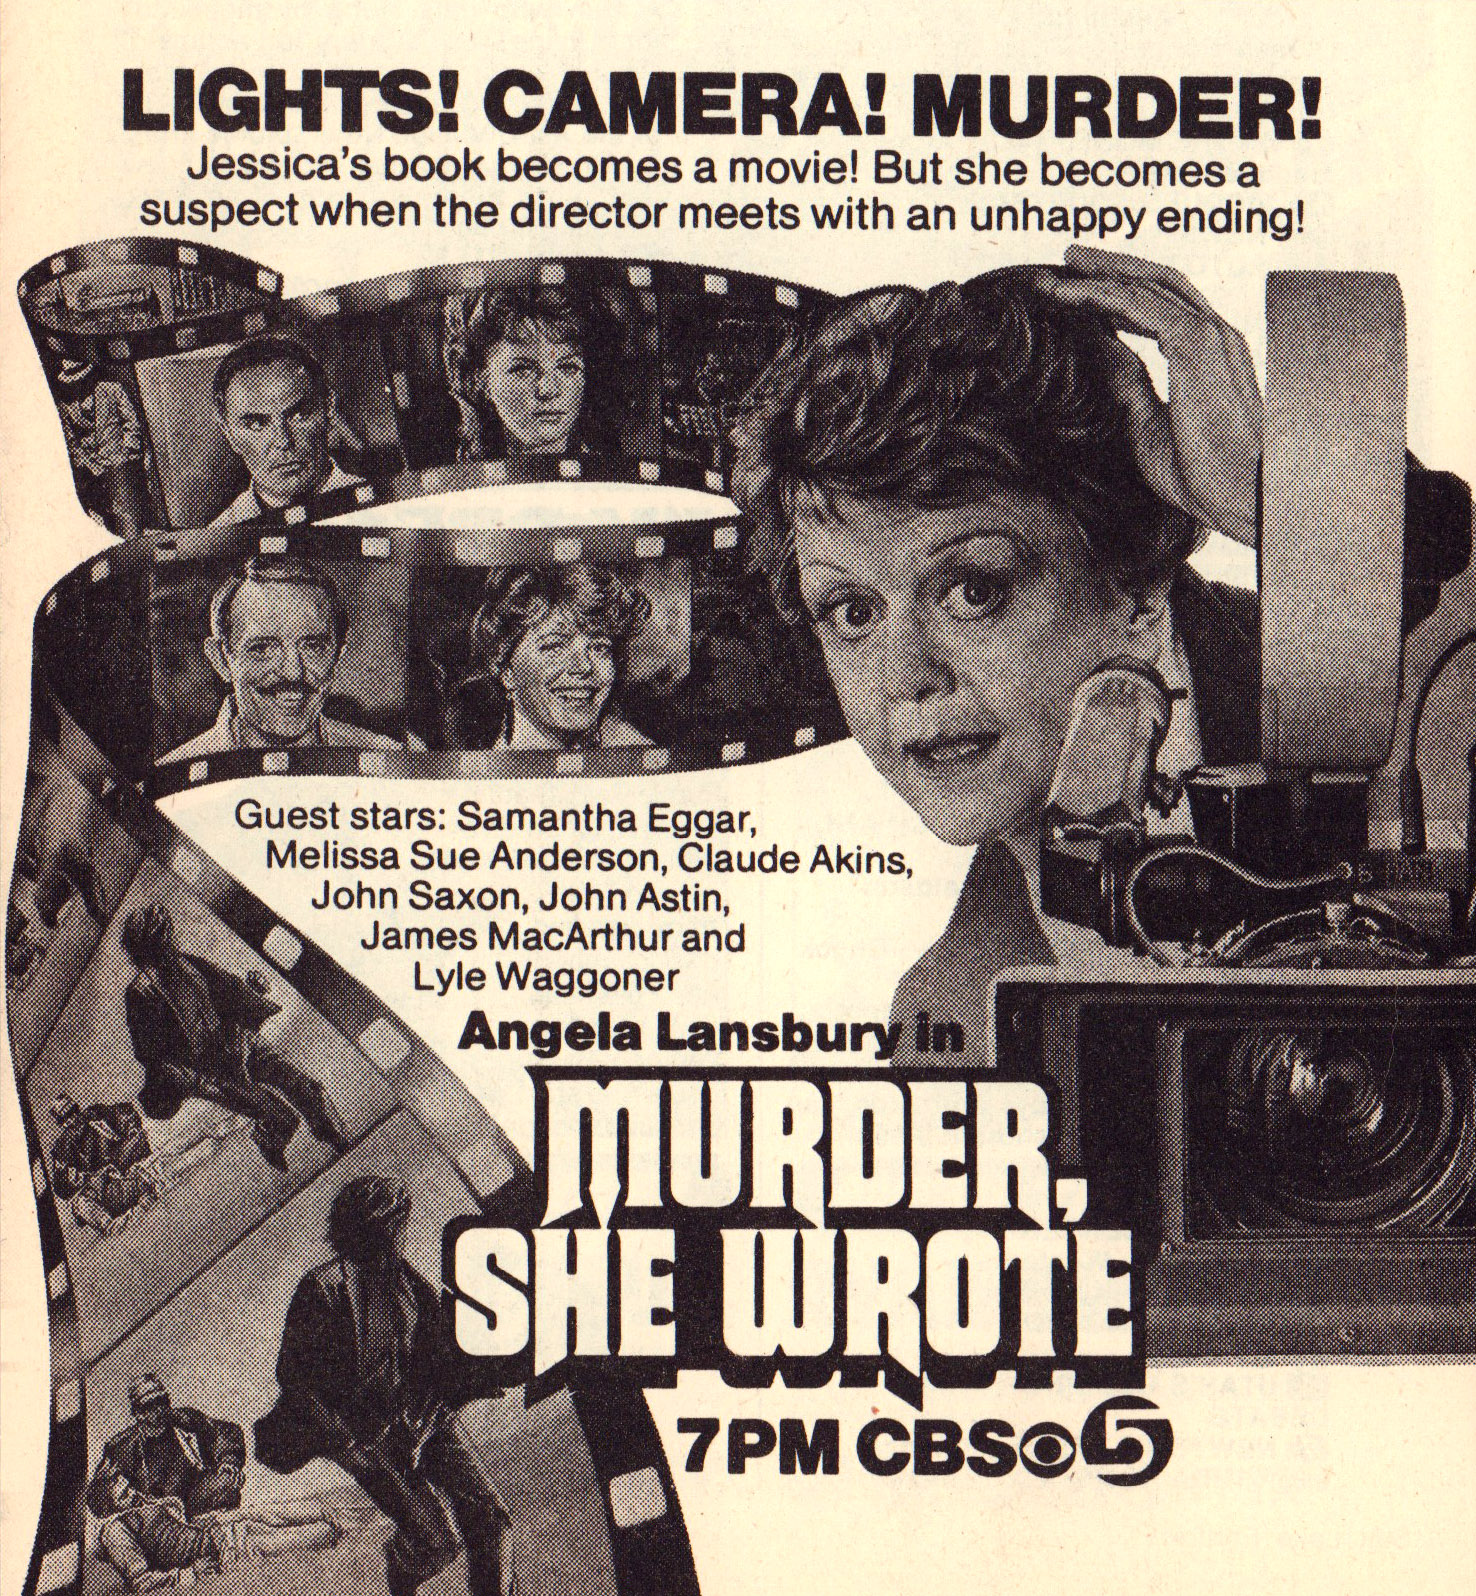 TV Guide Oct 27_Nov 2 1984 murder she wrote